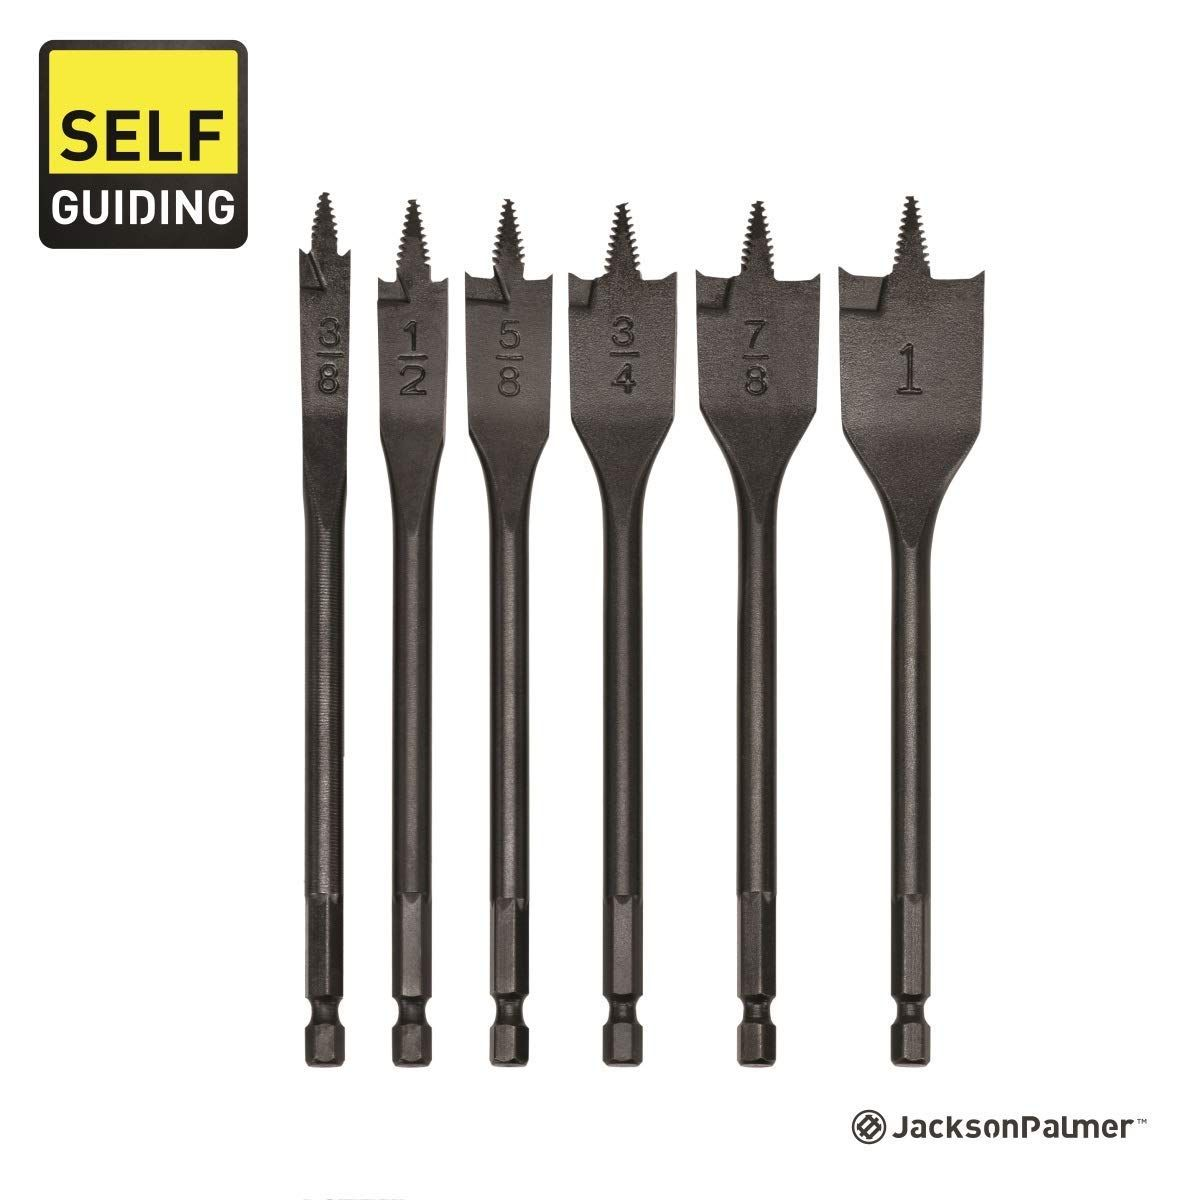 Self Guiding 6 Piece Spade Bit Set High Grade Carbon Steel With Quick Change Shank And 3200 Max Rpm You Can Get Additional Detai In 2020 Carbon Steel Carbon Steel